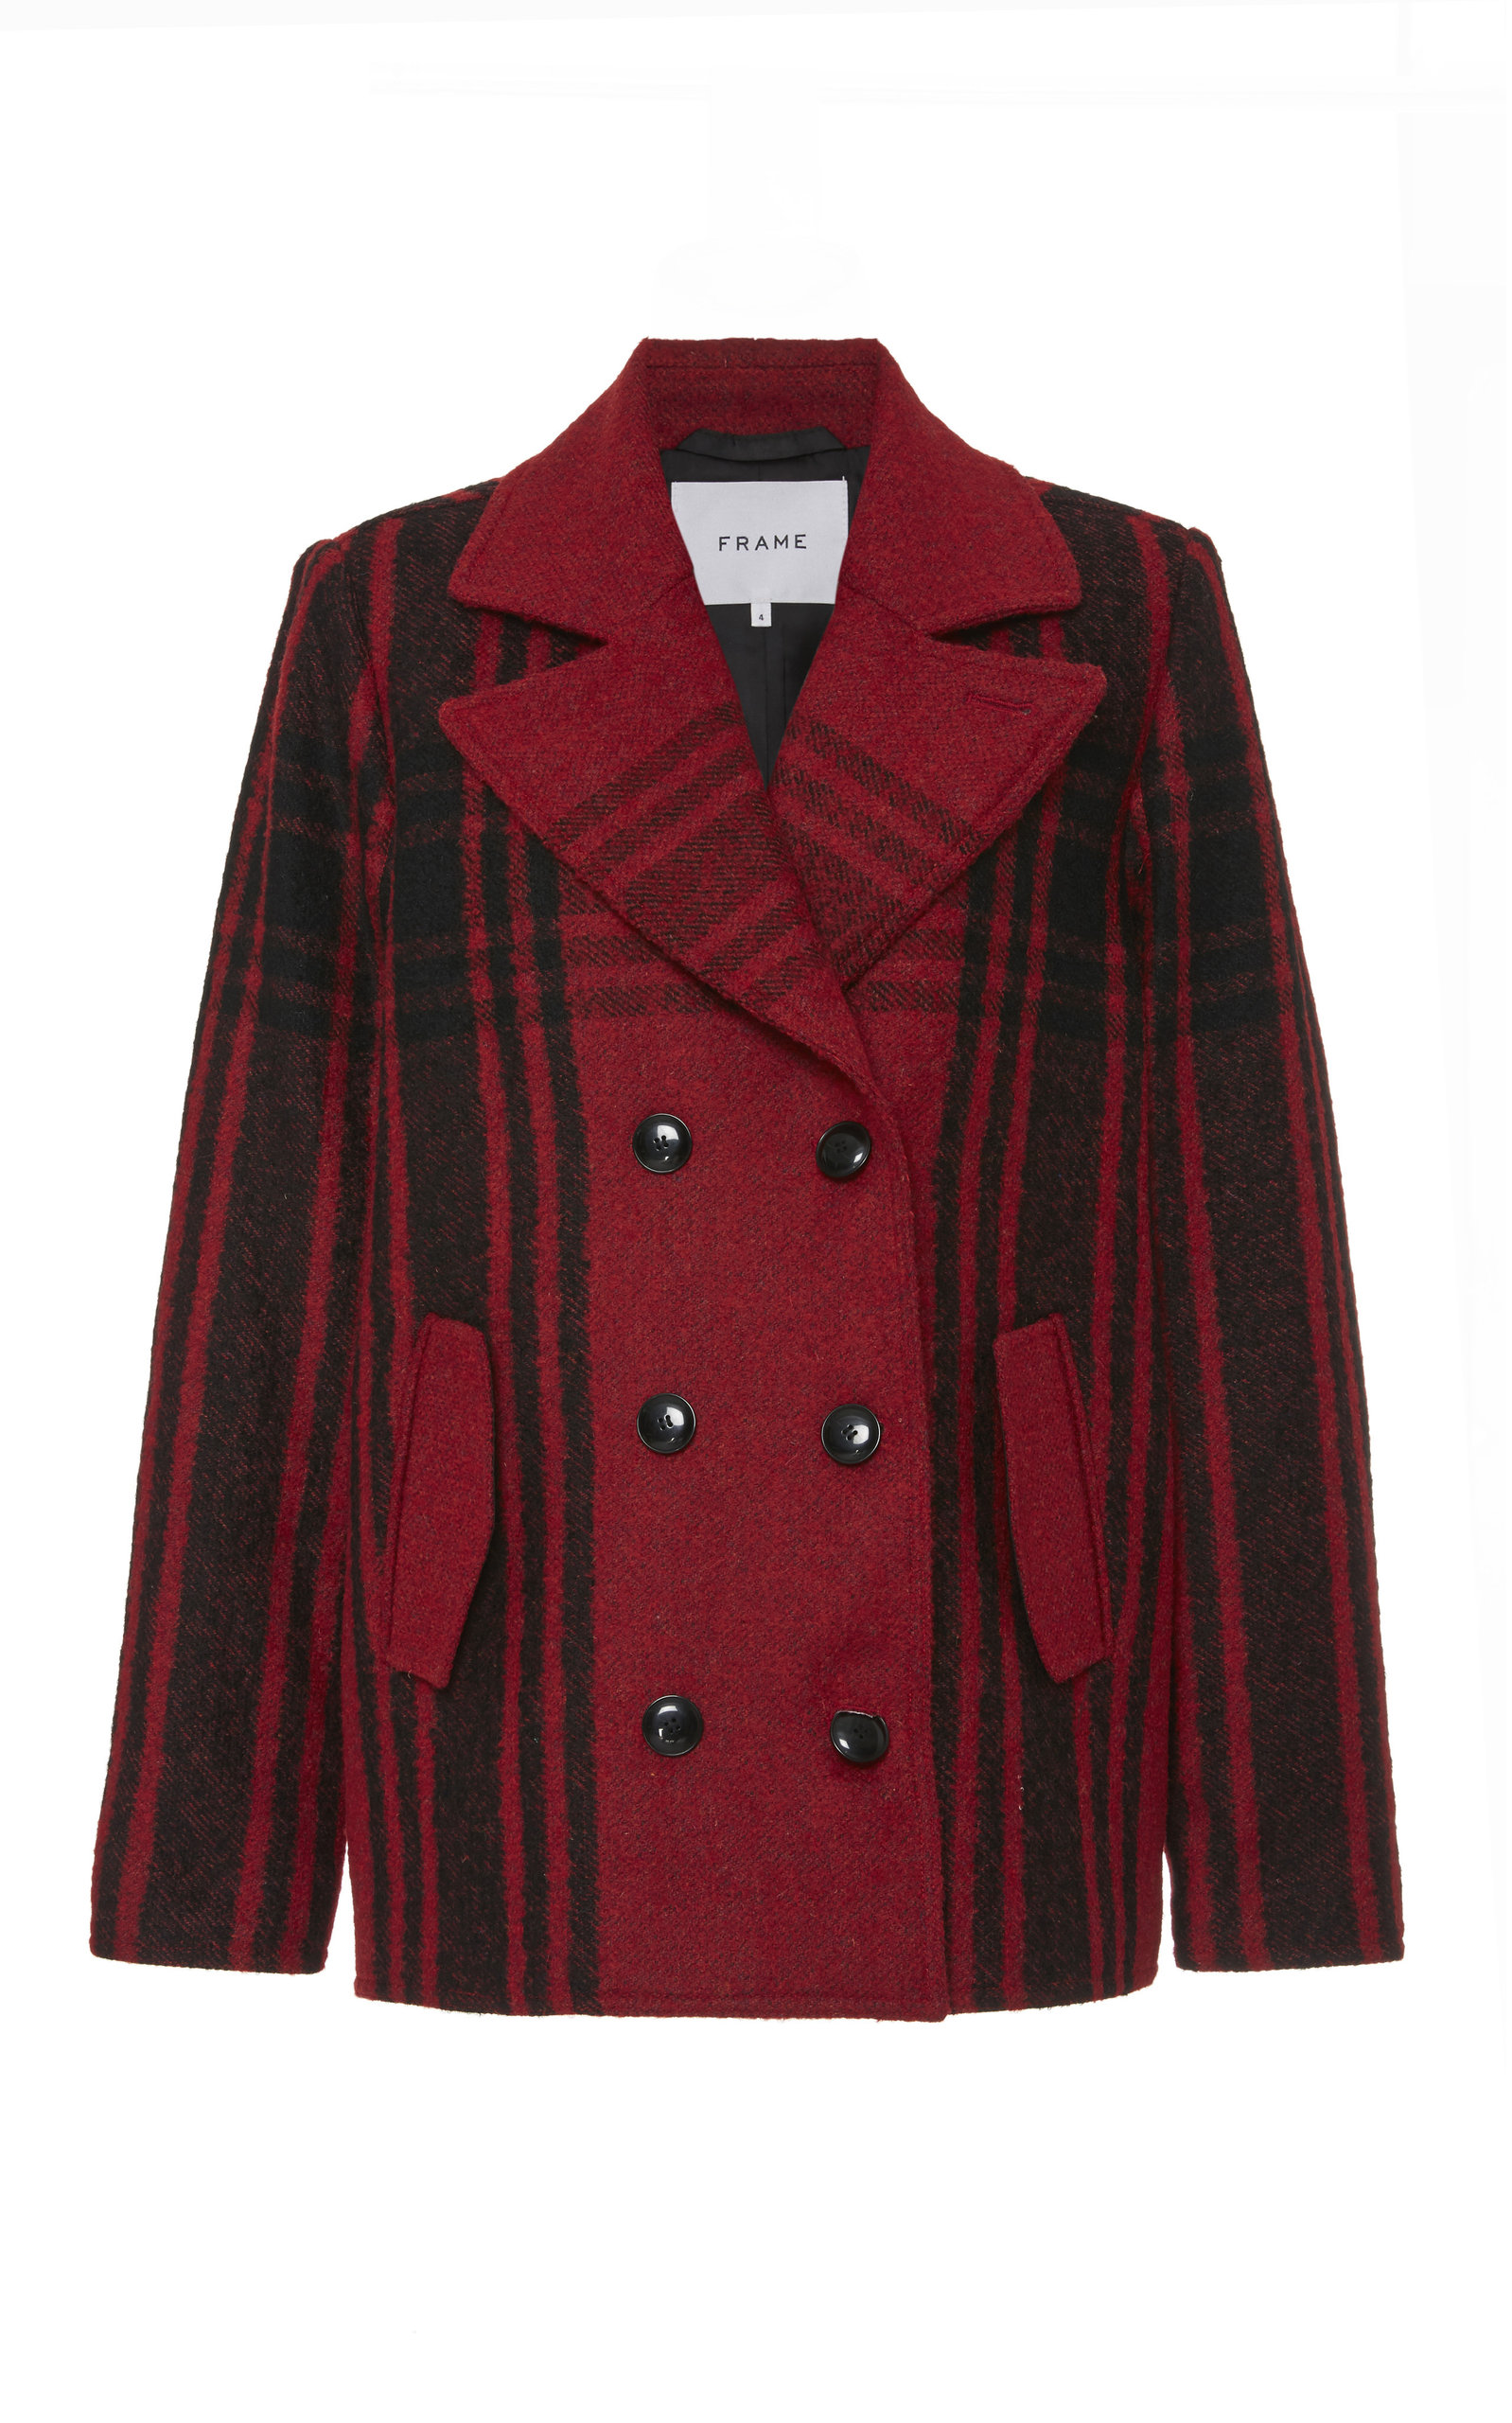 Buffalo Check Peacoat in Red